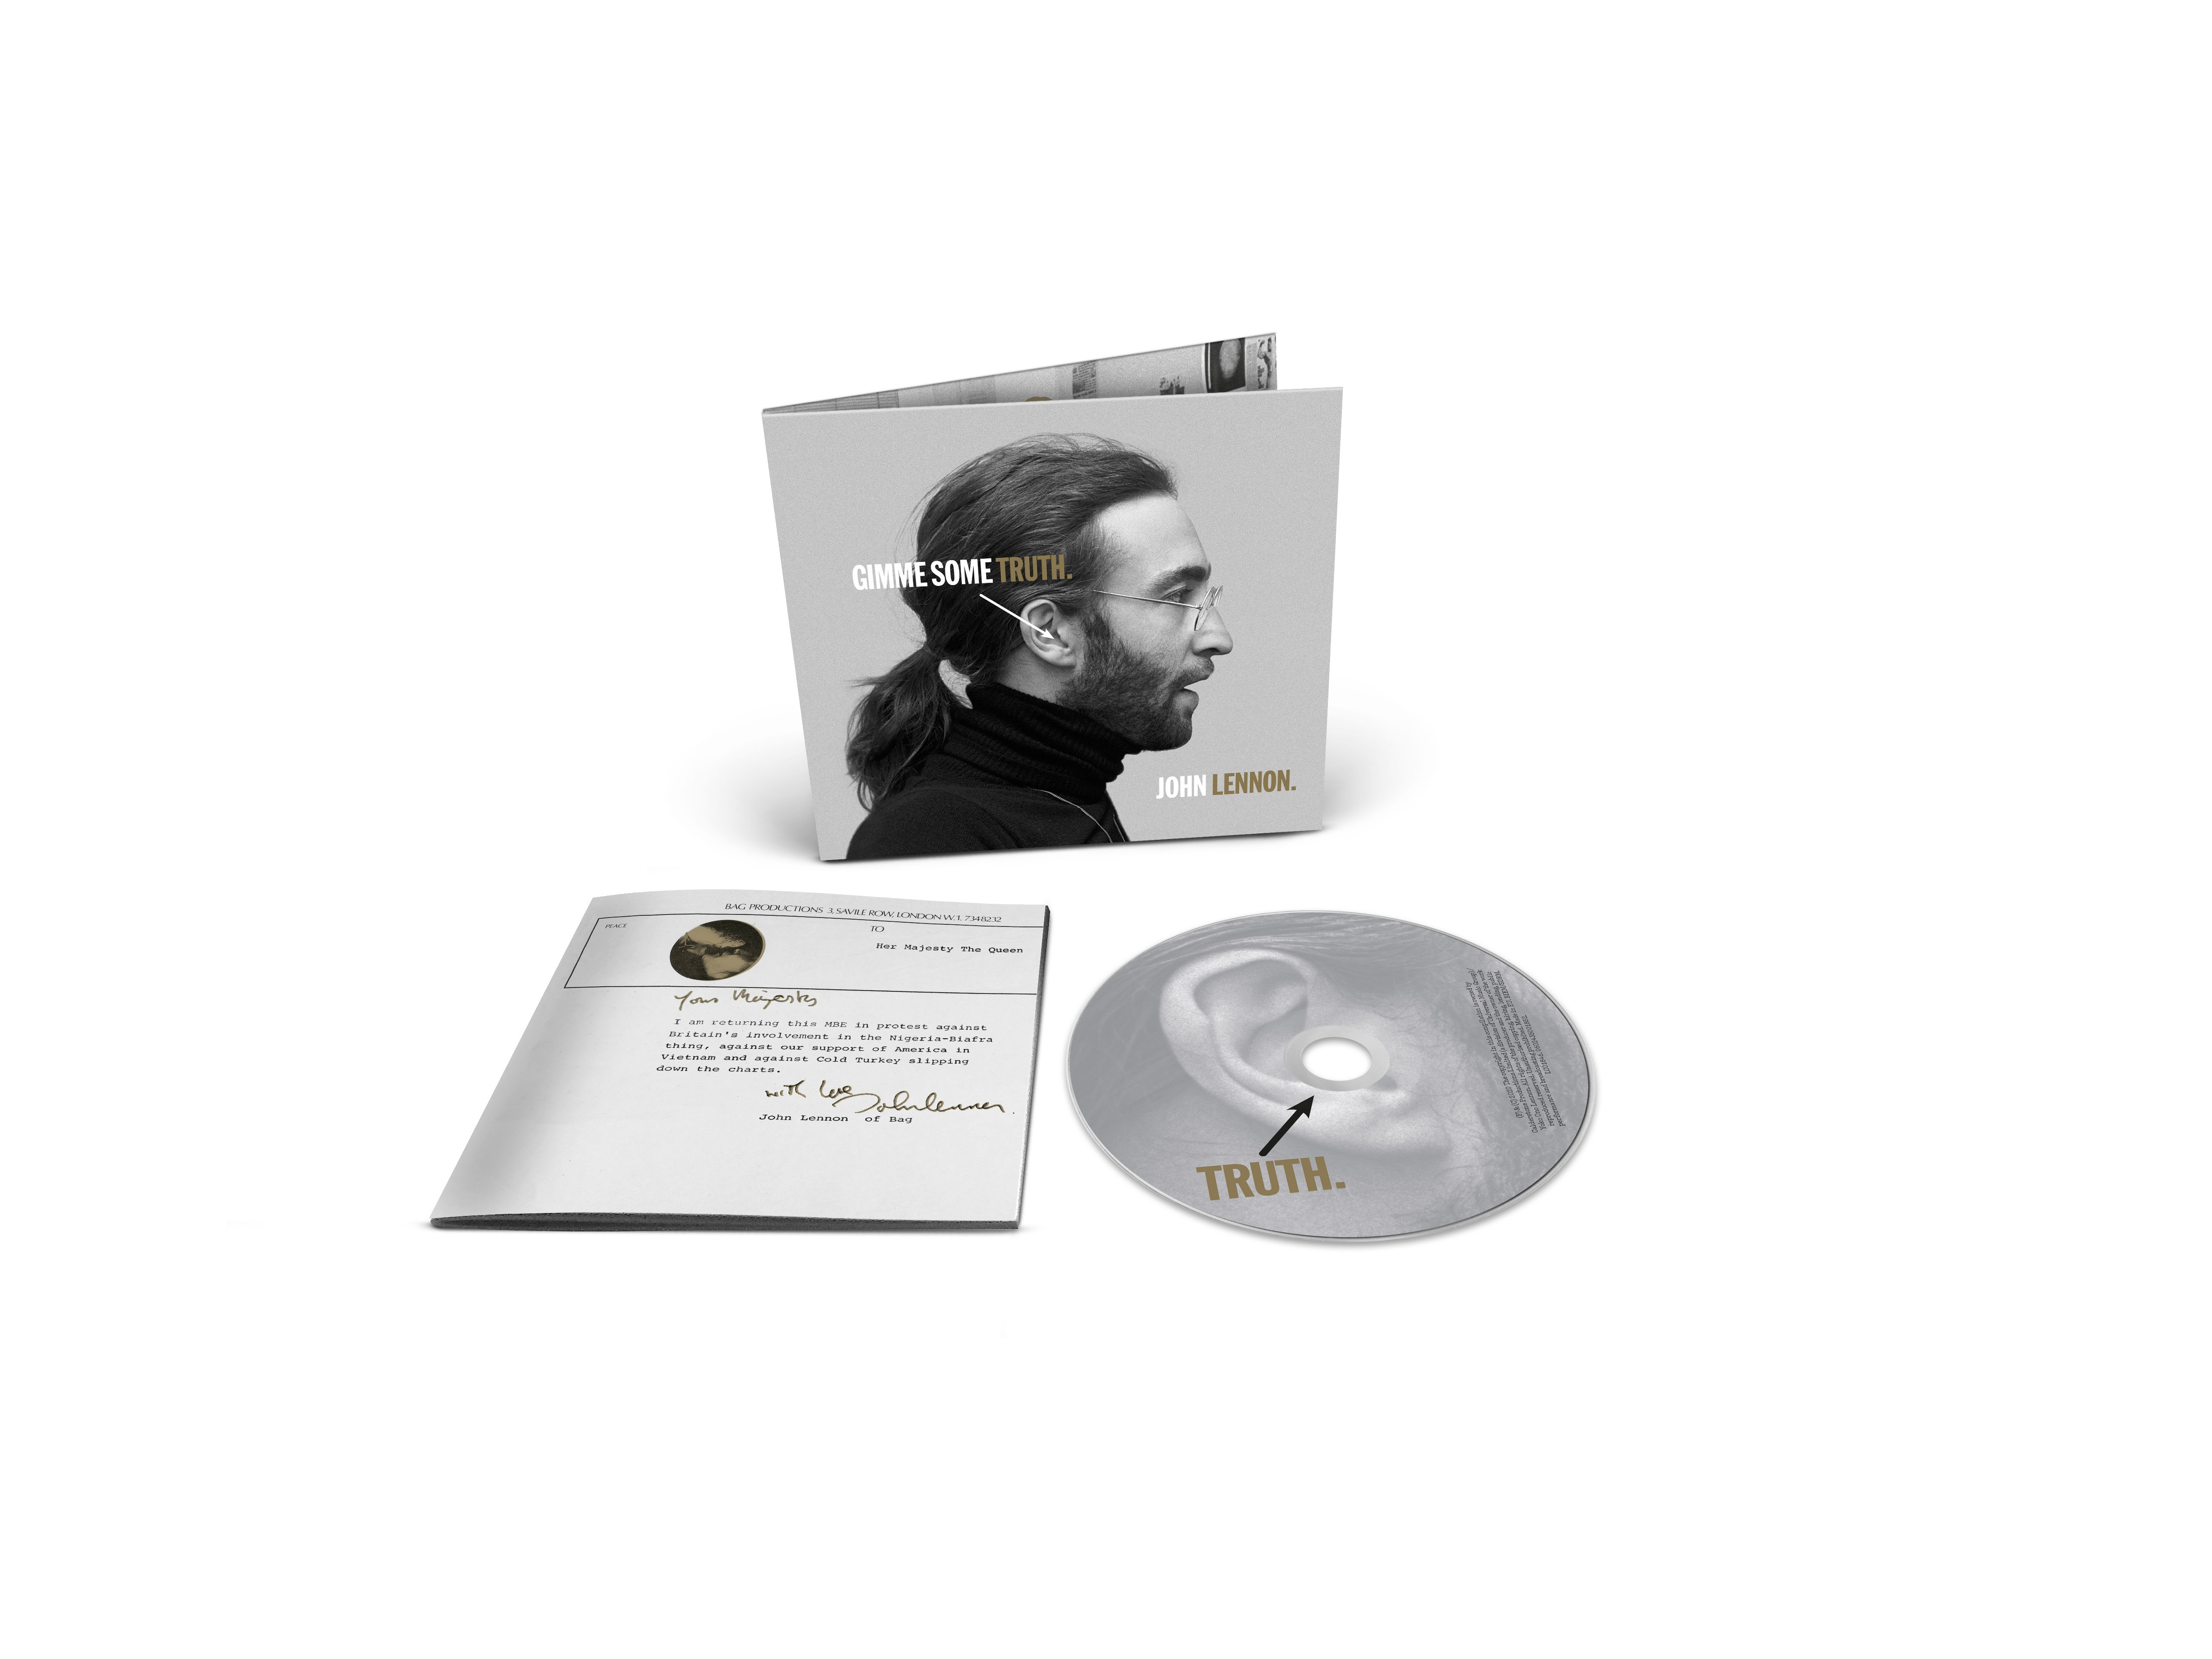 Lennon-Gimme Some Truth-3D Product Image-1CD-Final.jpg